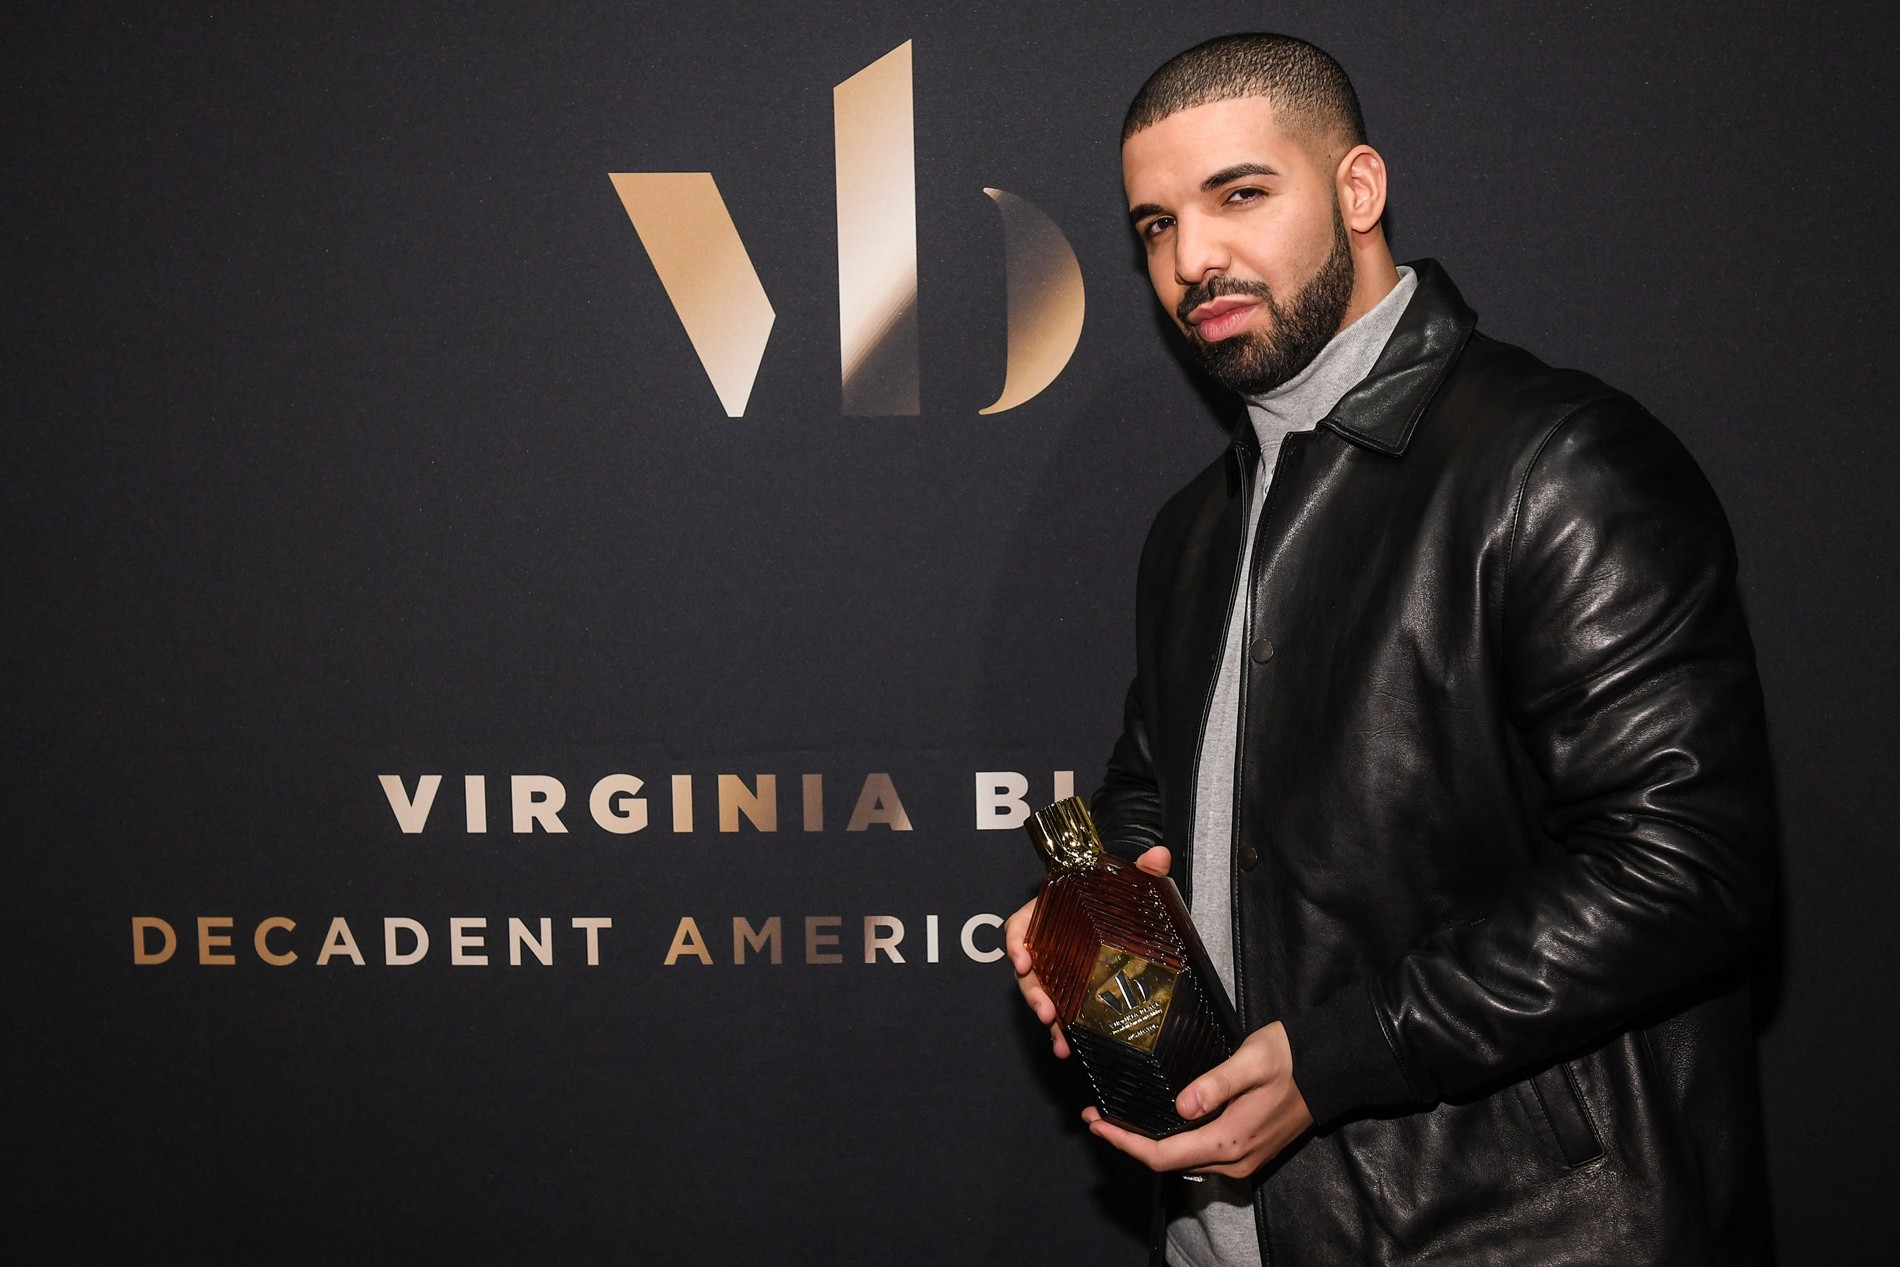 Photo by George Pimentel/Getty Images for Virginia Black Decadent American Whiskey